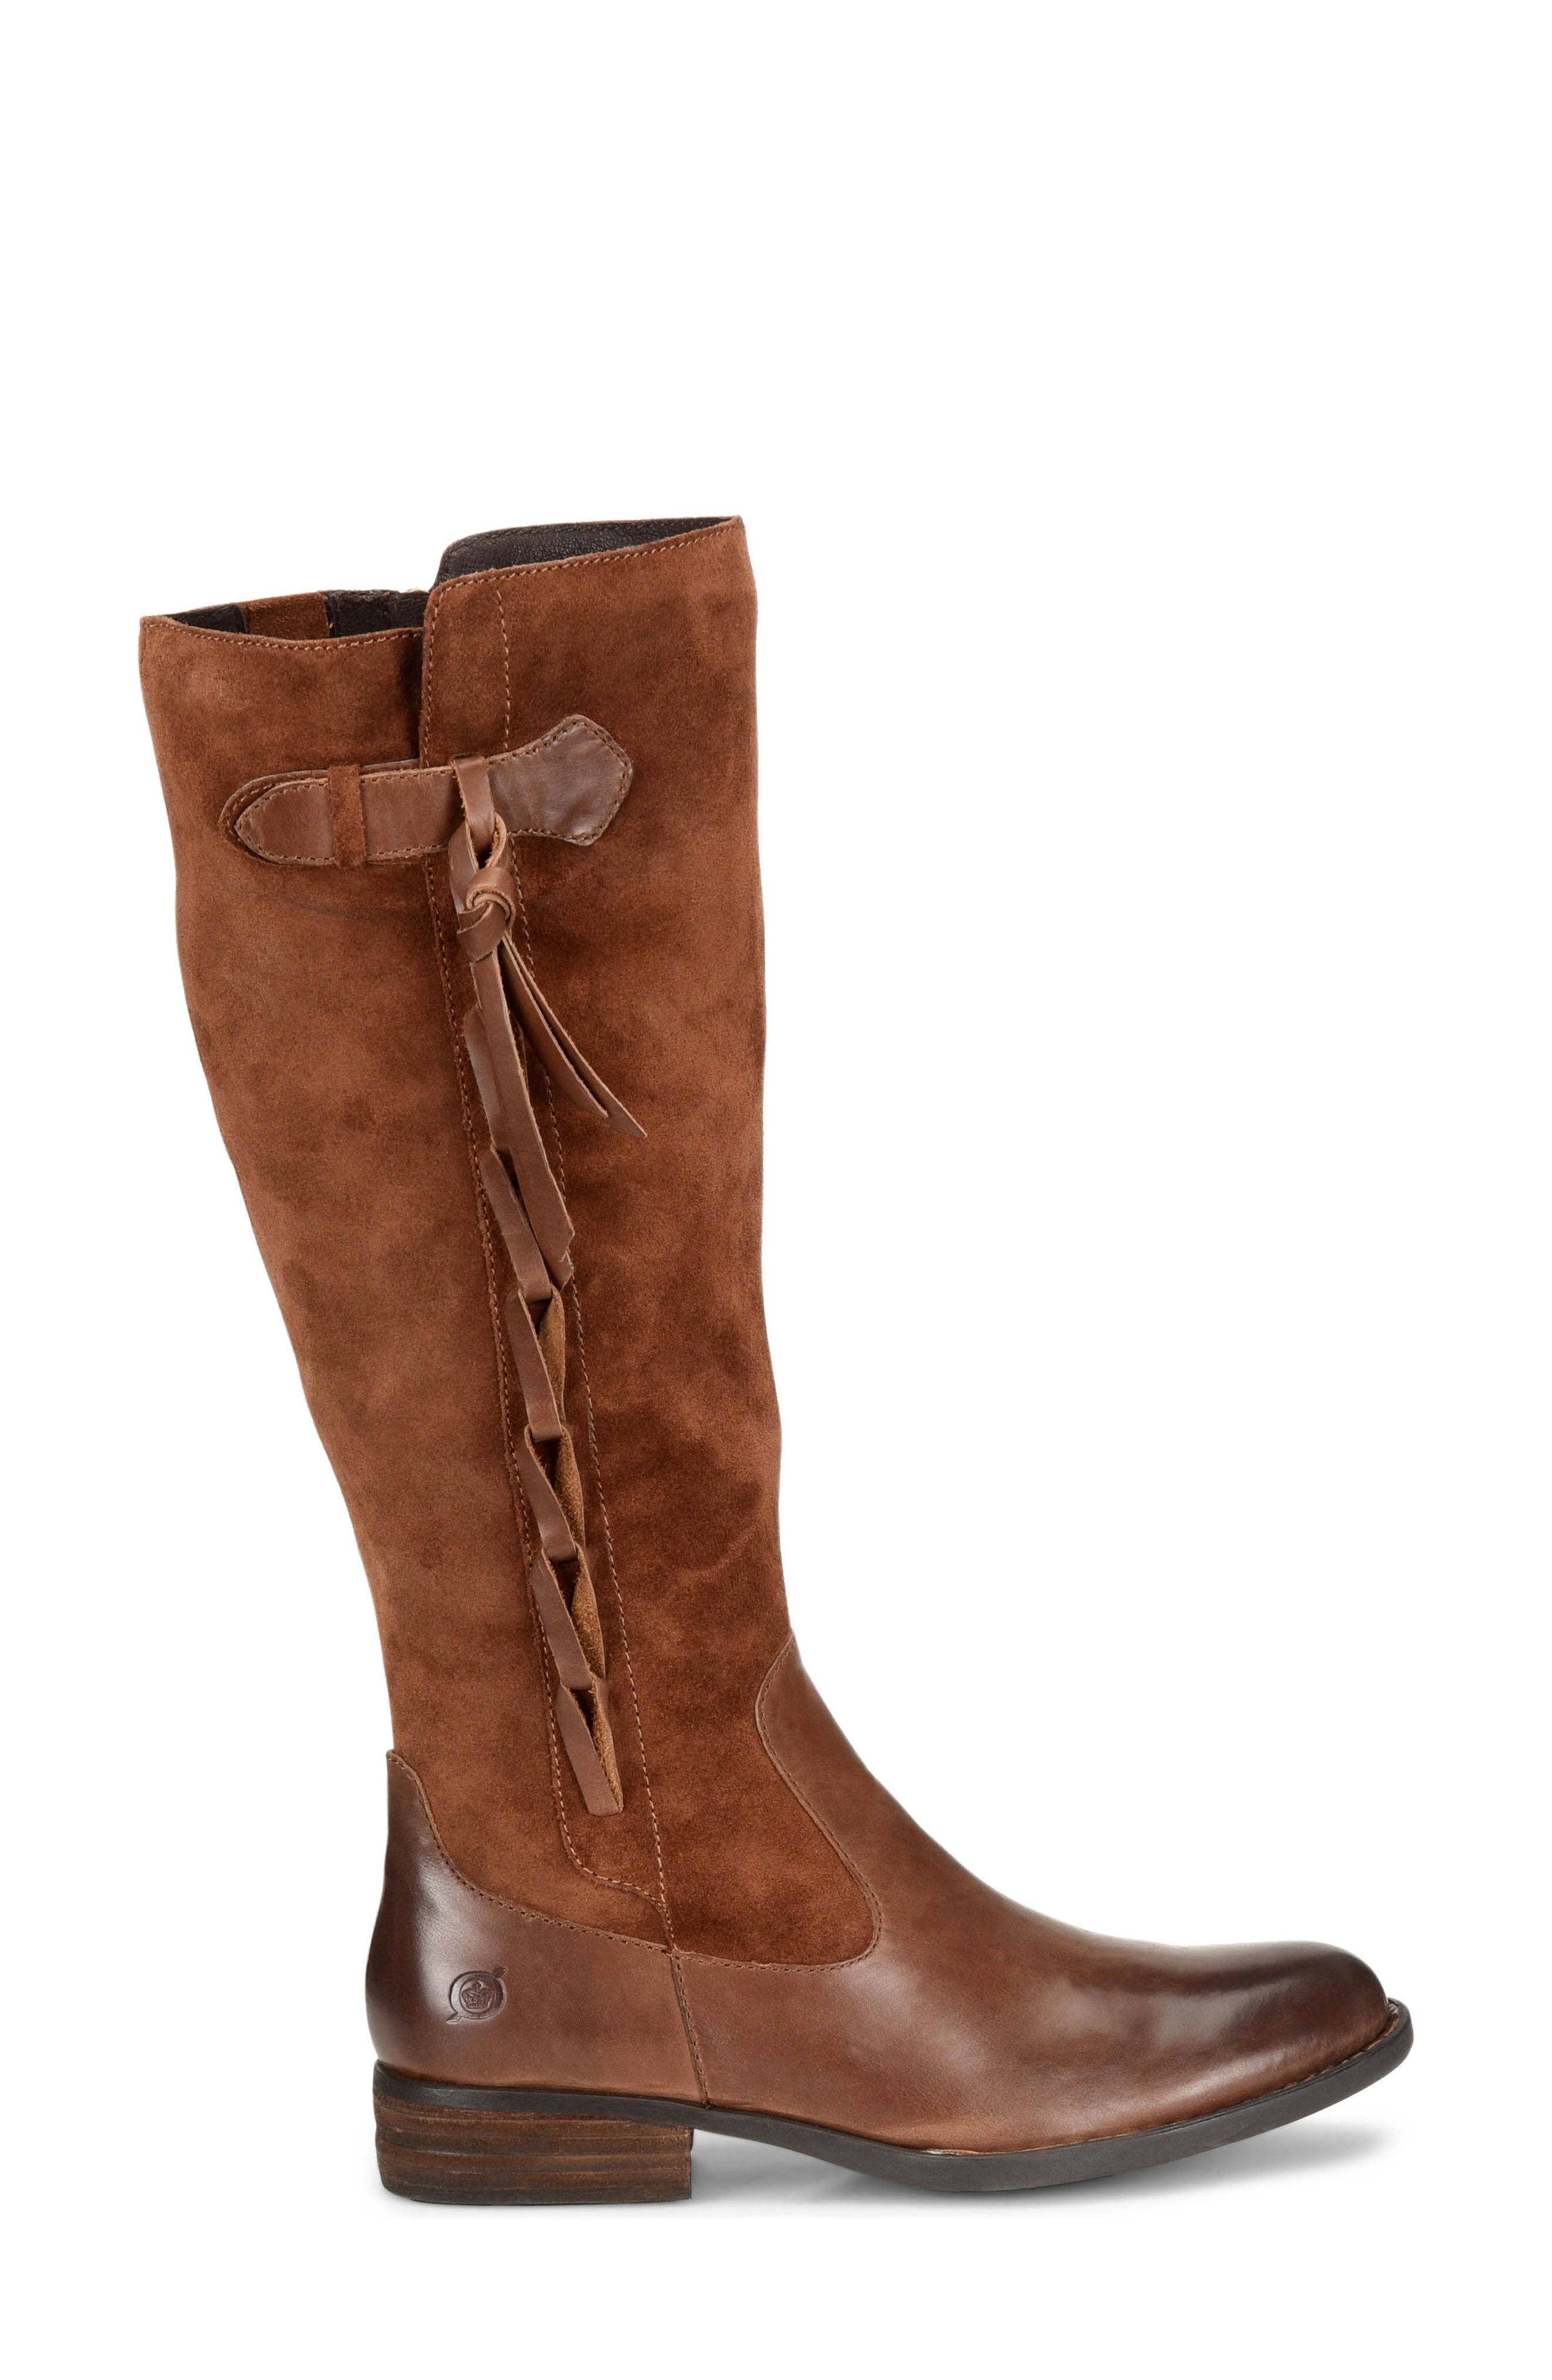 Cook Knee High Boot,                             Alternate thumbnail 3, color,                             Brown/ Rust Combo